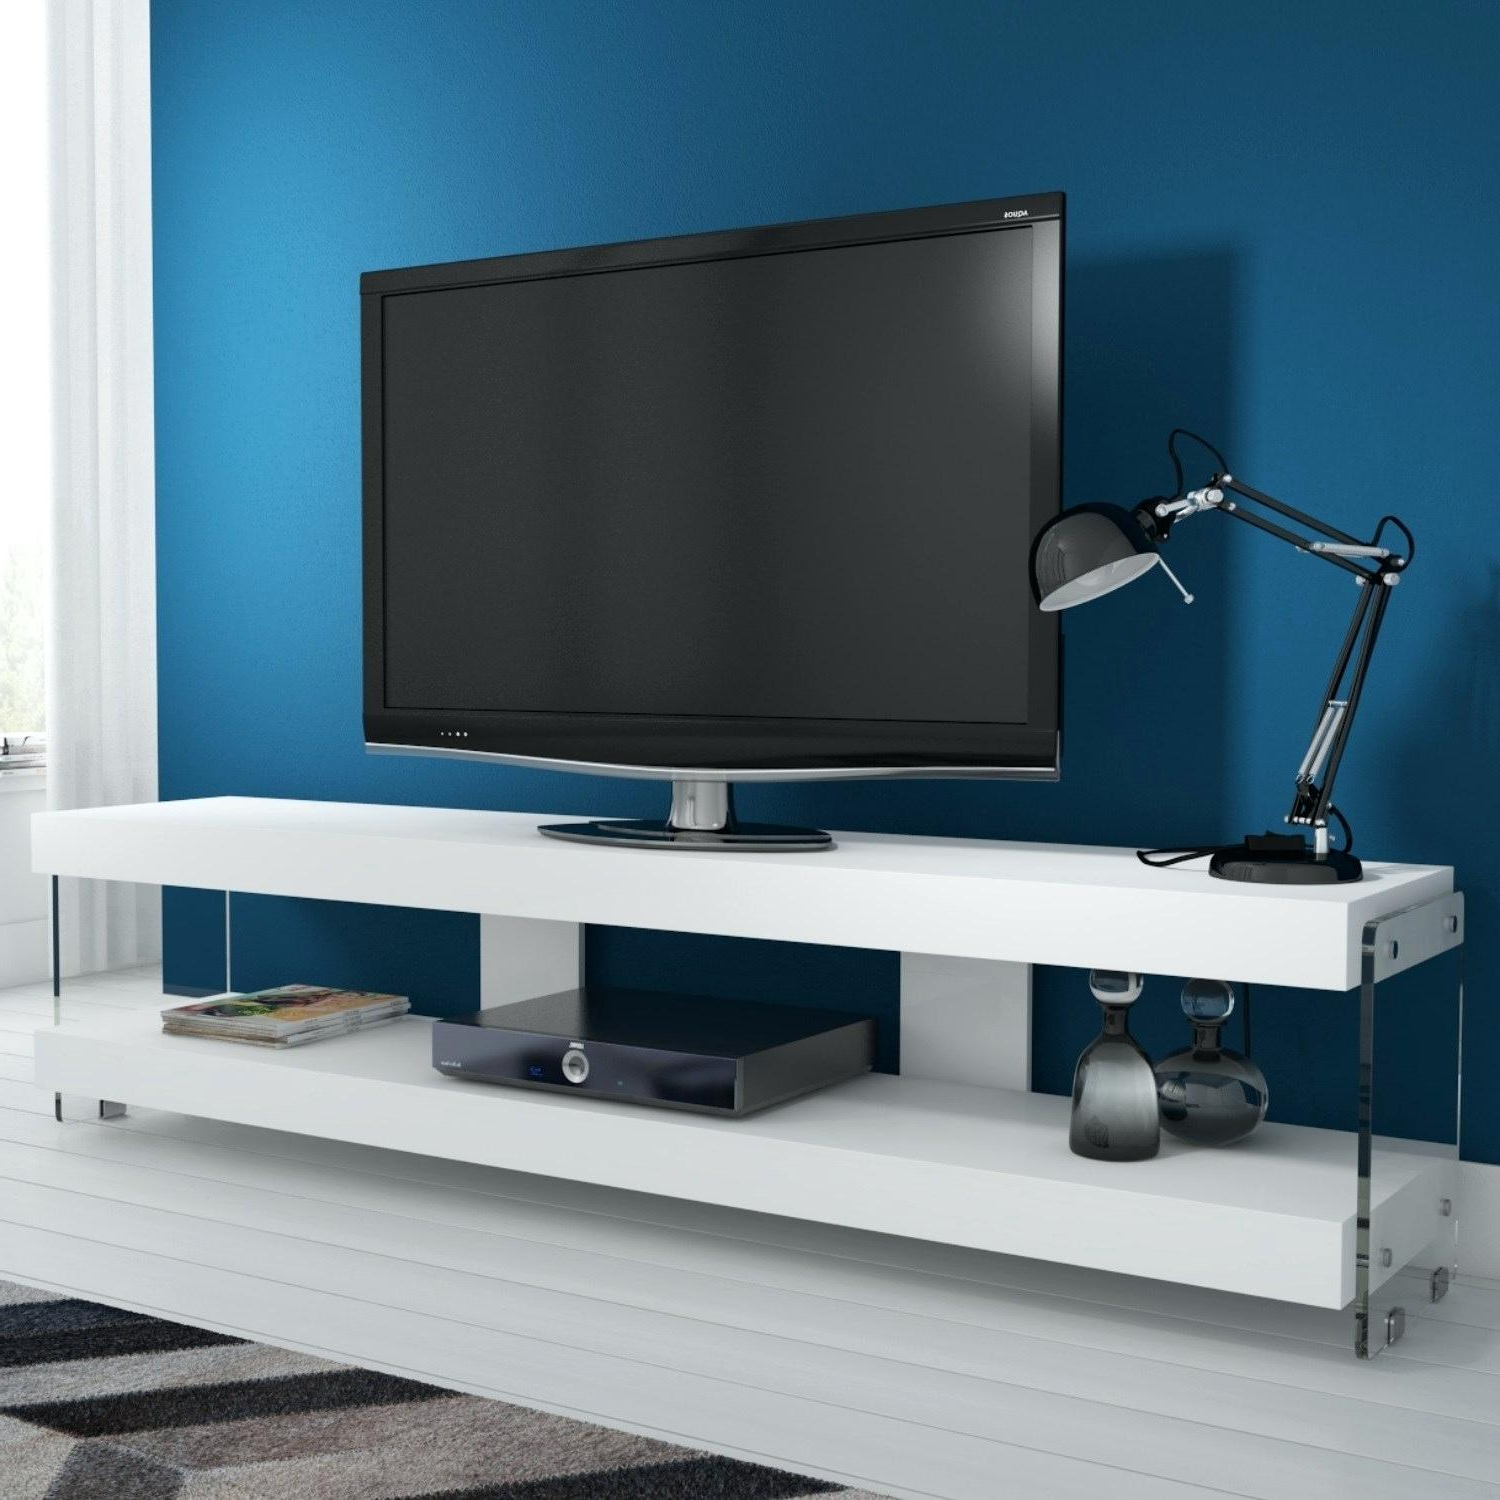 Well Liked High Gloss White Corner Tv Stand Comfort In 2 – Portalgier With White Gloss Corner Tv Stands (View 11 of 20)